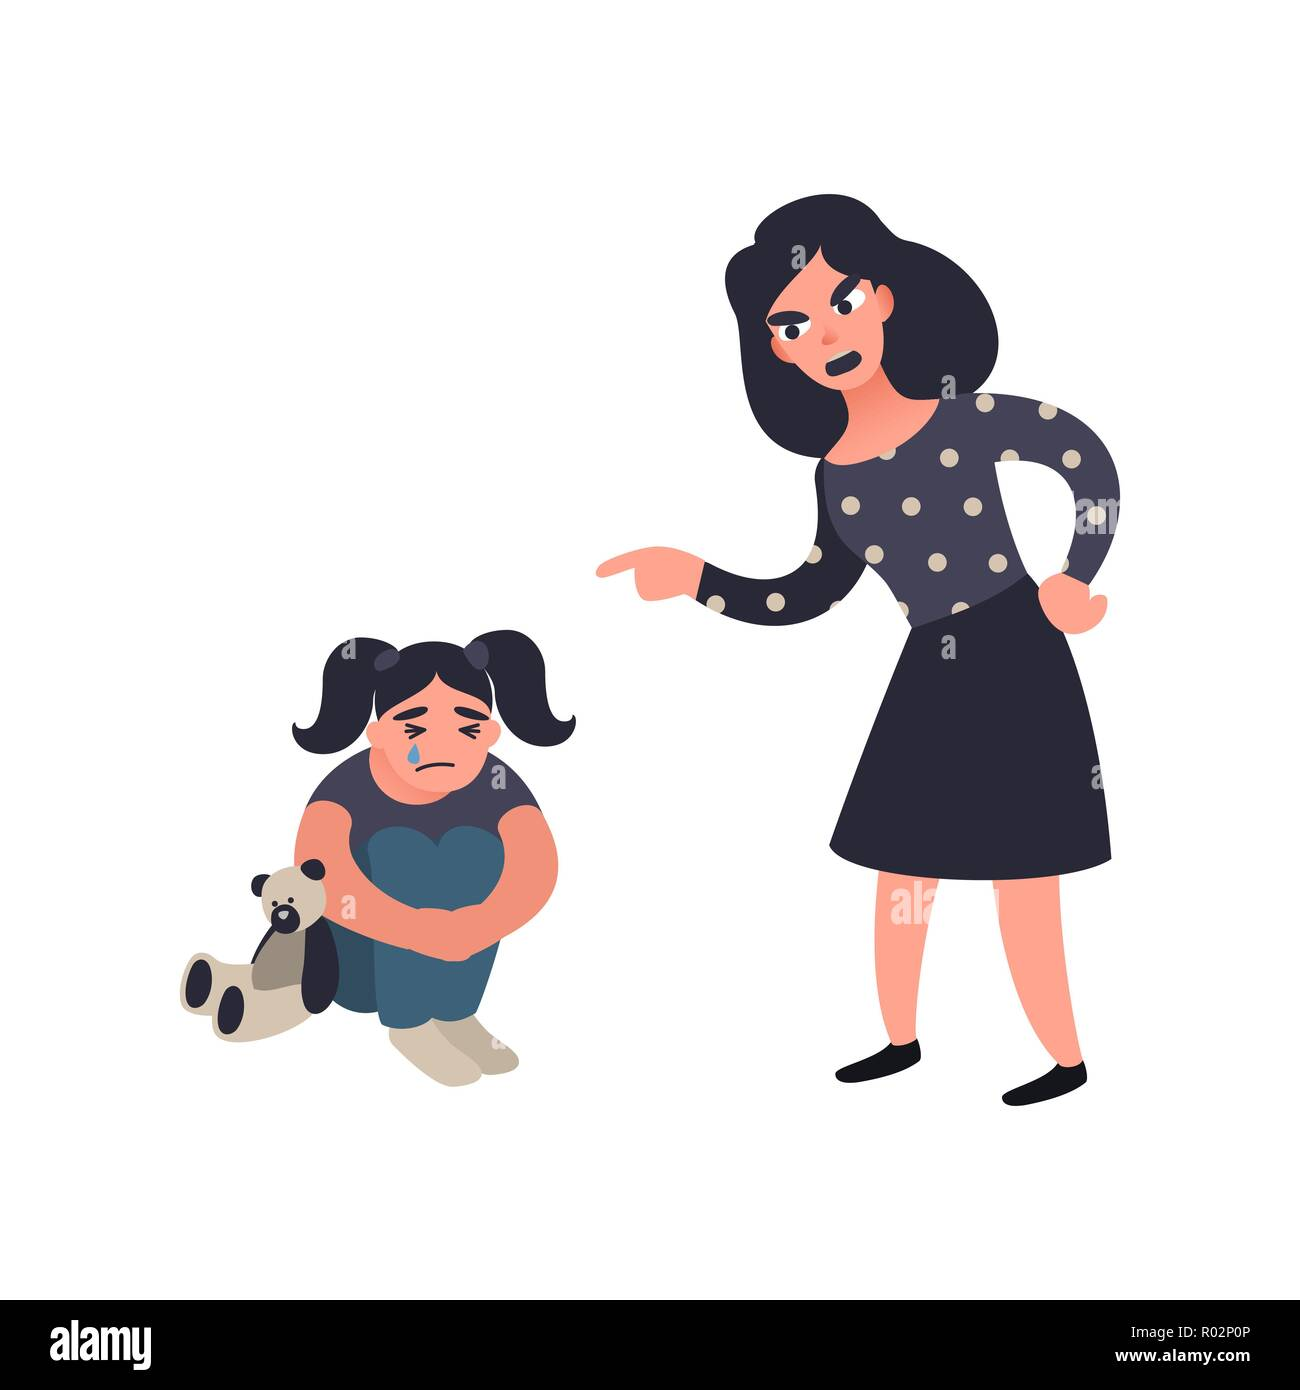 Mother punishing her little sad crying daughter. Mom scolds her child. Wrong education. Domestic conflict concept. Stock Vector